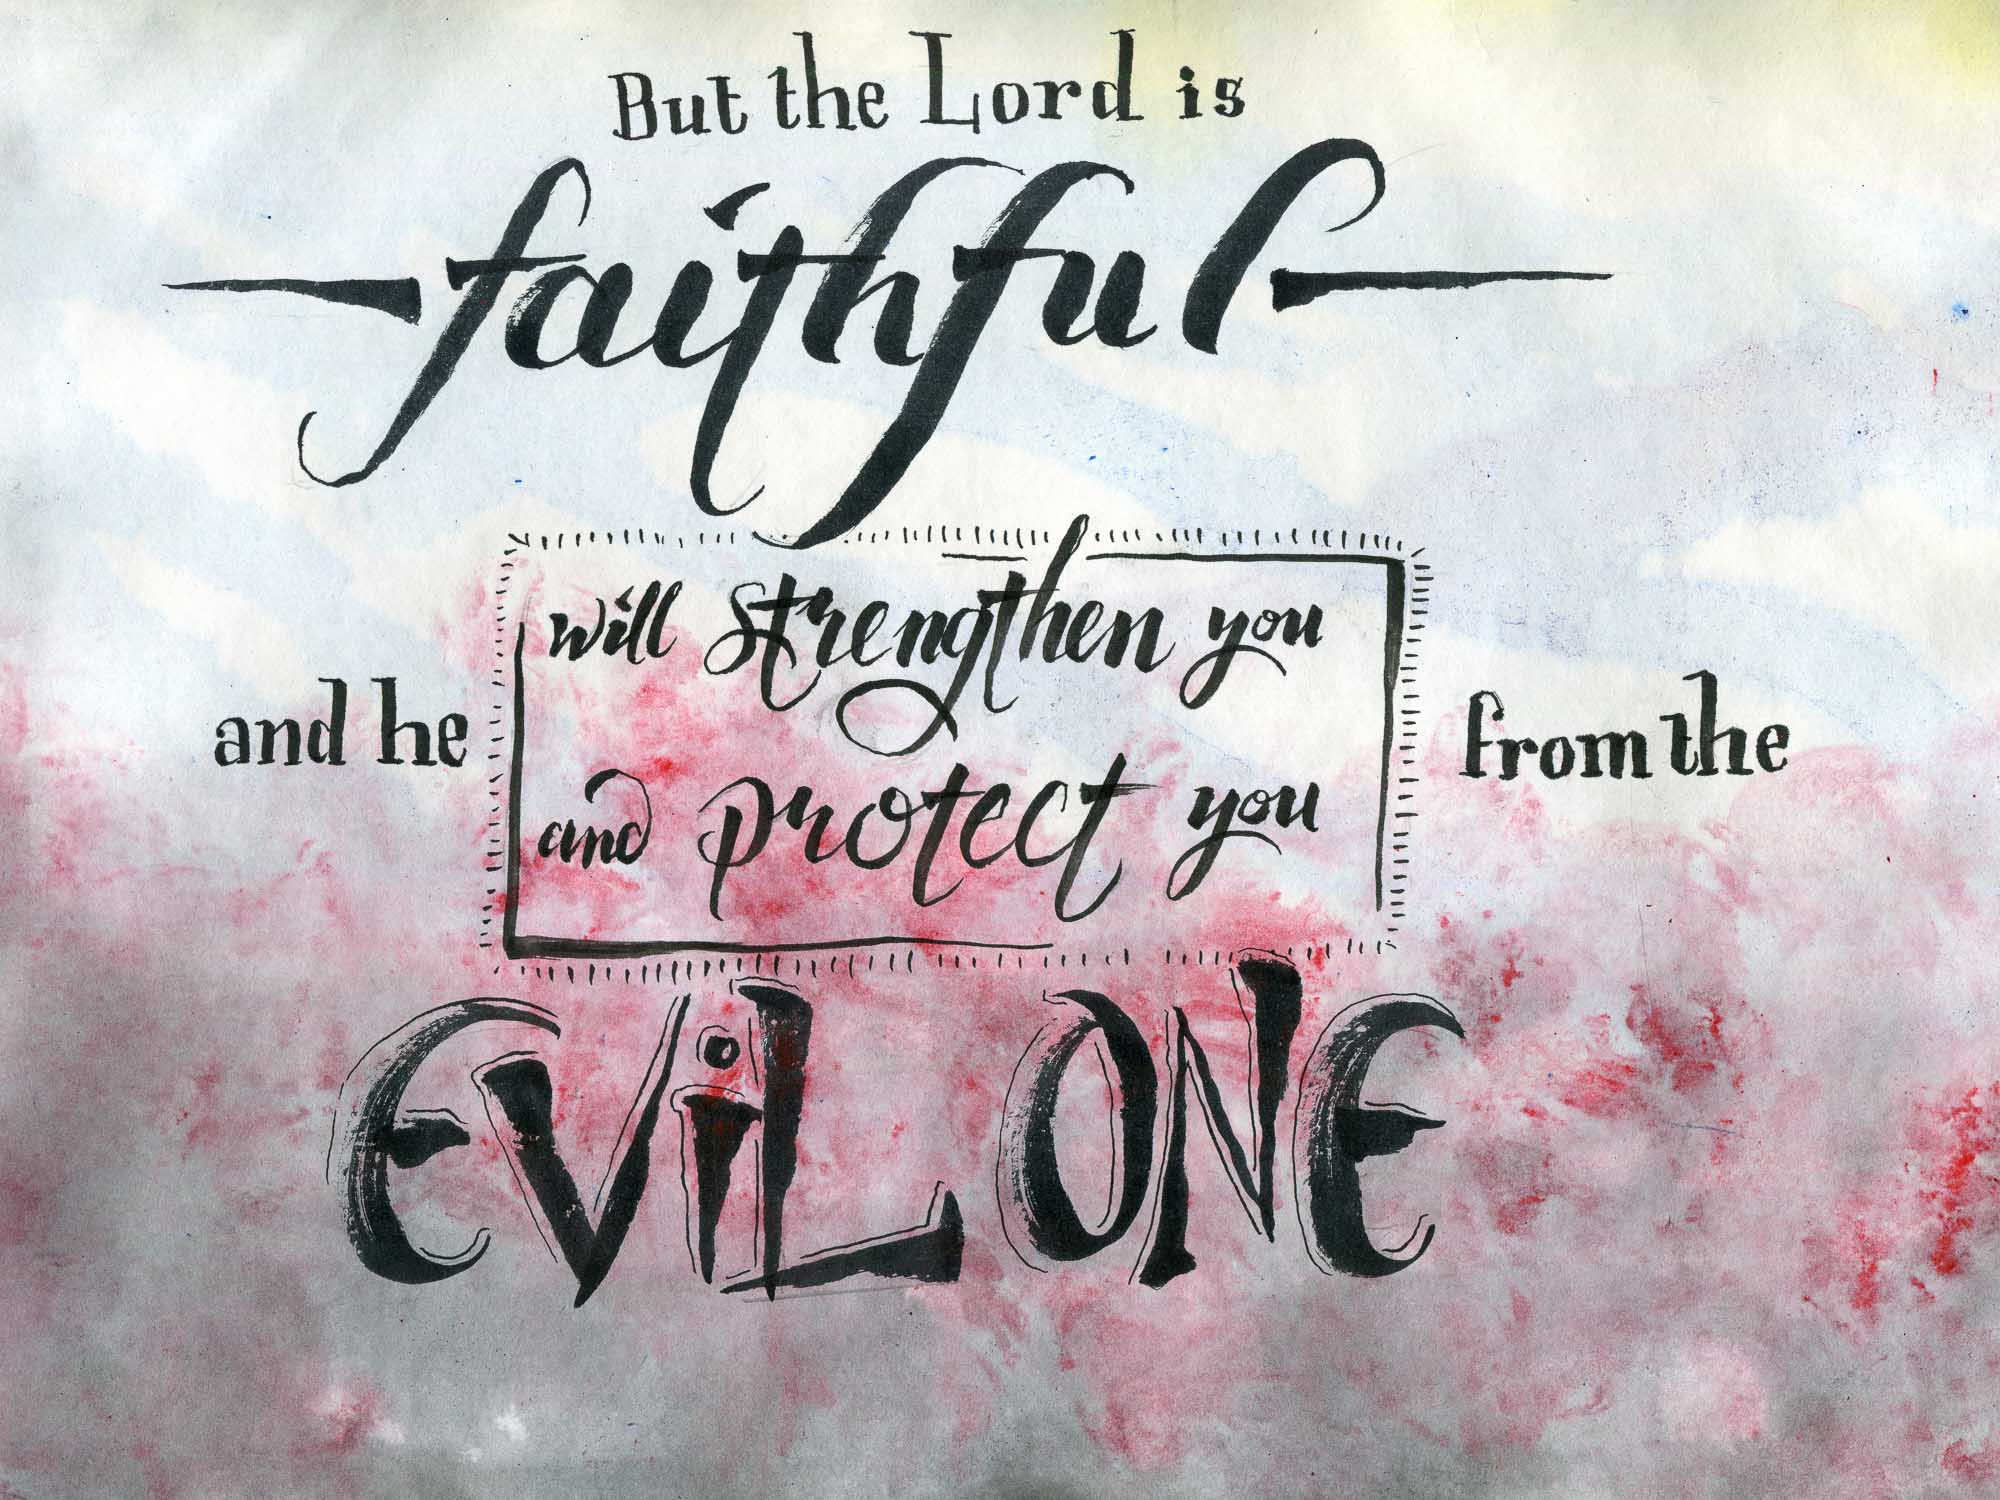 2 thessalonians 3:3 Bible verse art